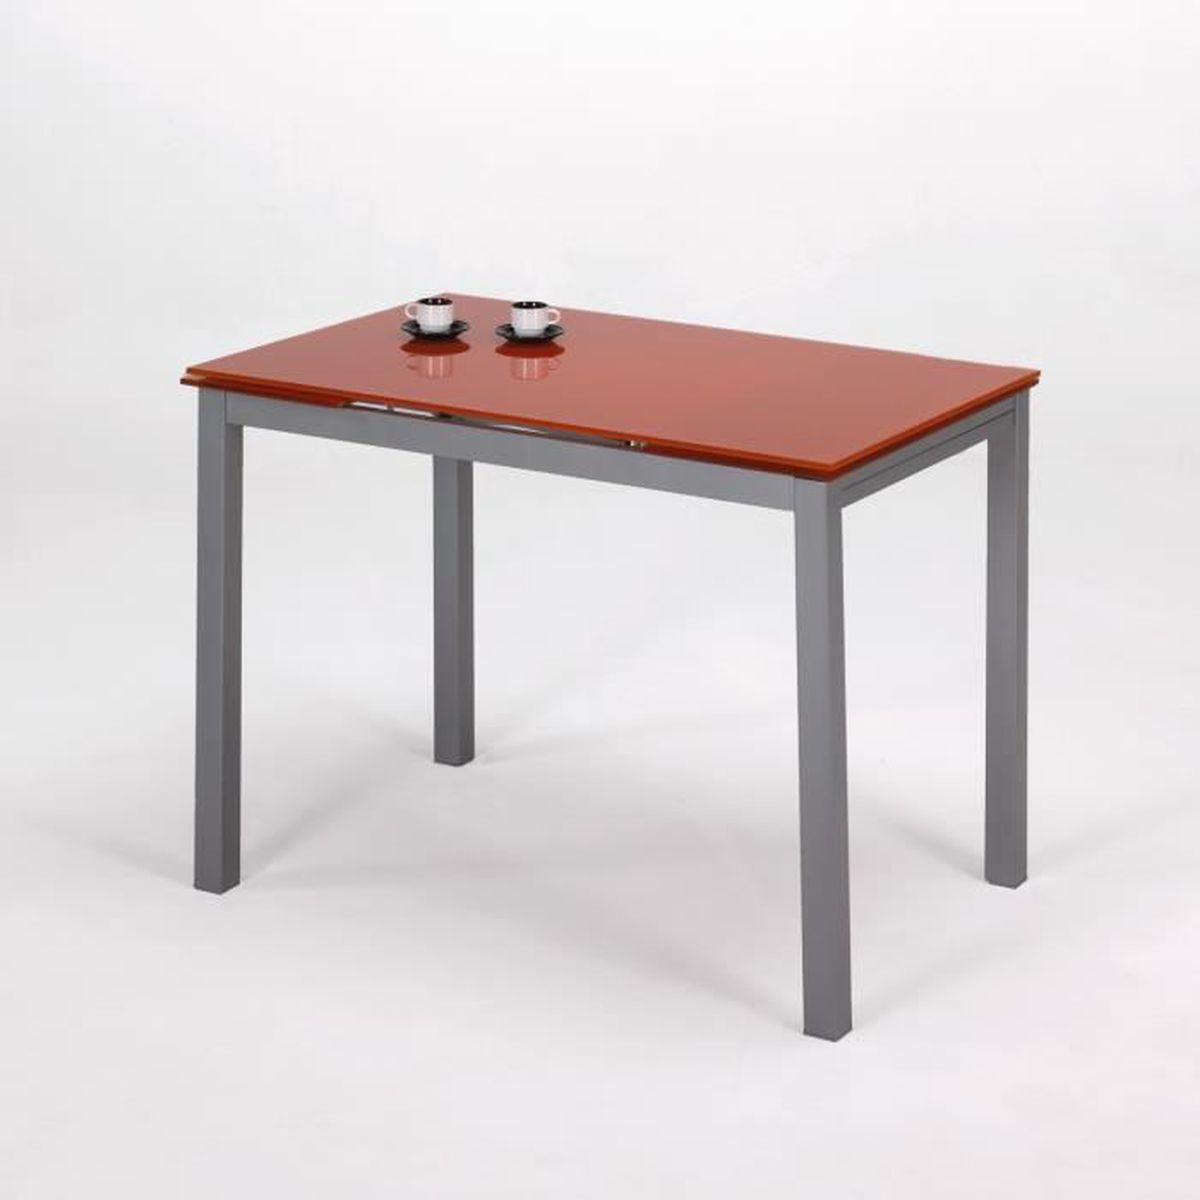 Table extensible avec ailes orange achat vente console for Meuble avec table extensible